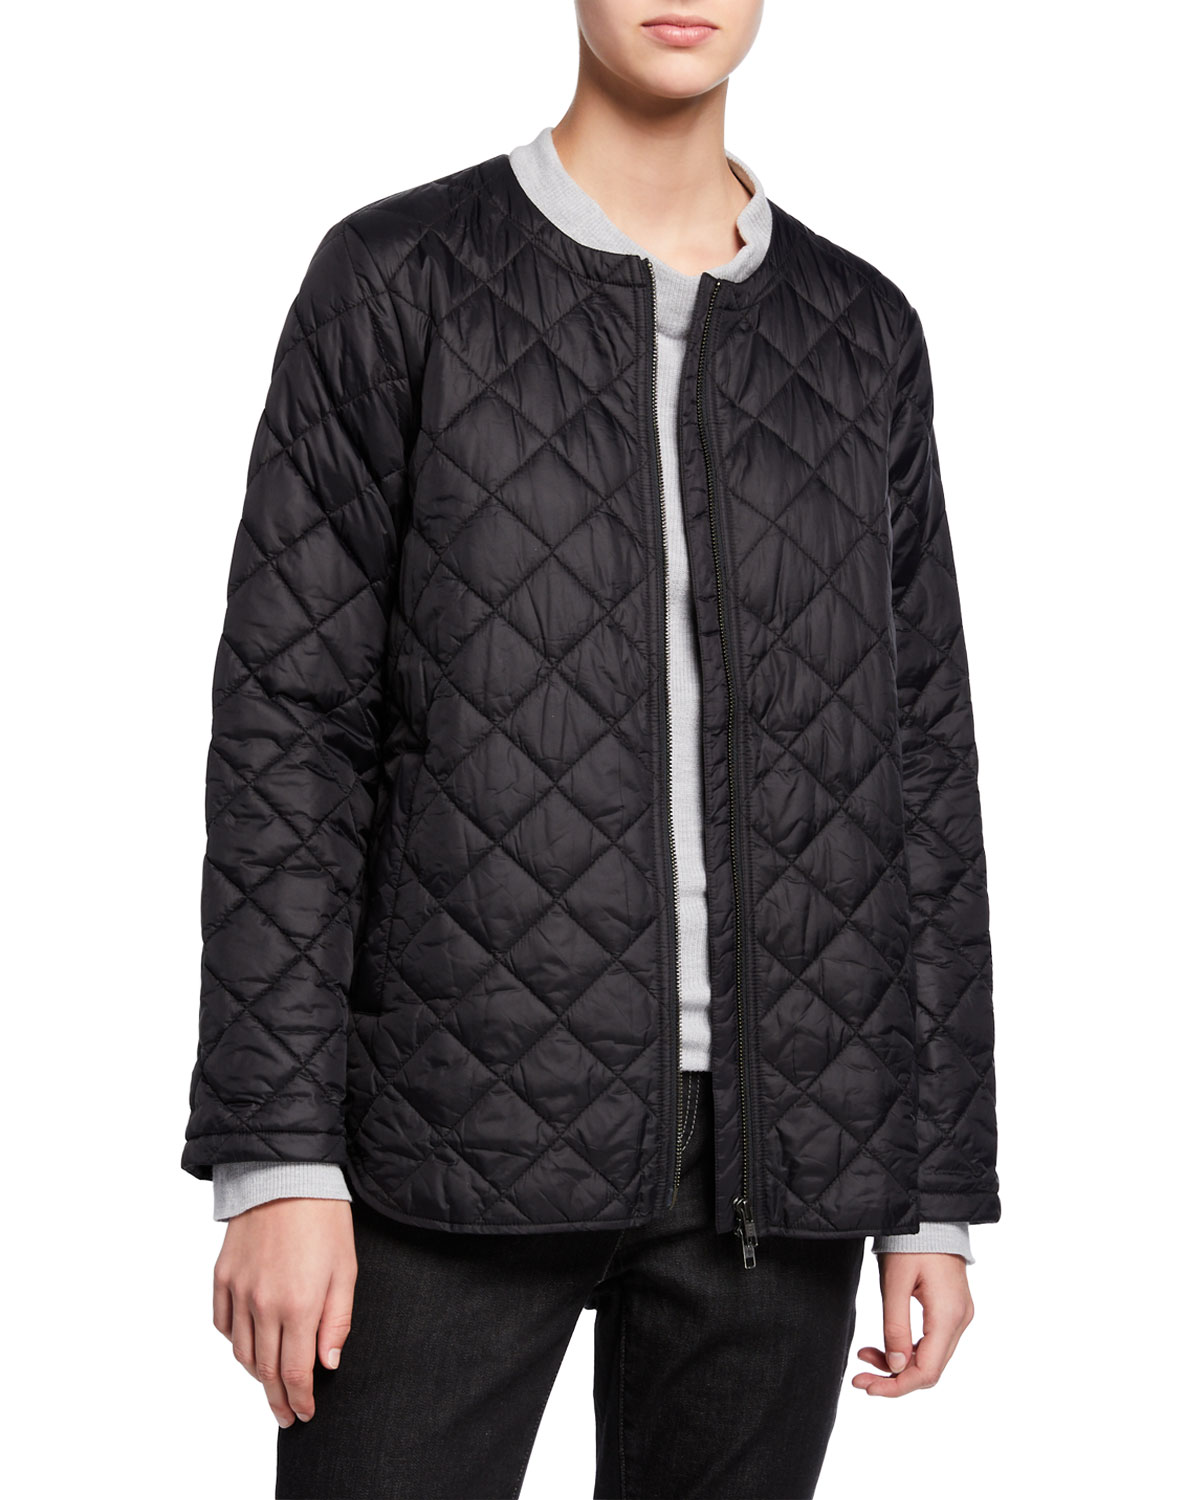 Eileen Fisher Jackets RECYCLED NYLON DIAMOND QUILTED ZIP-FRONT SHIRTTAIL HEM JACKET